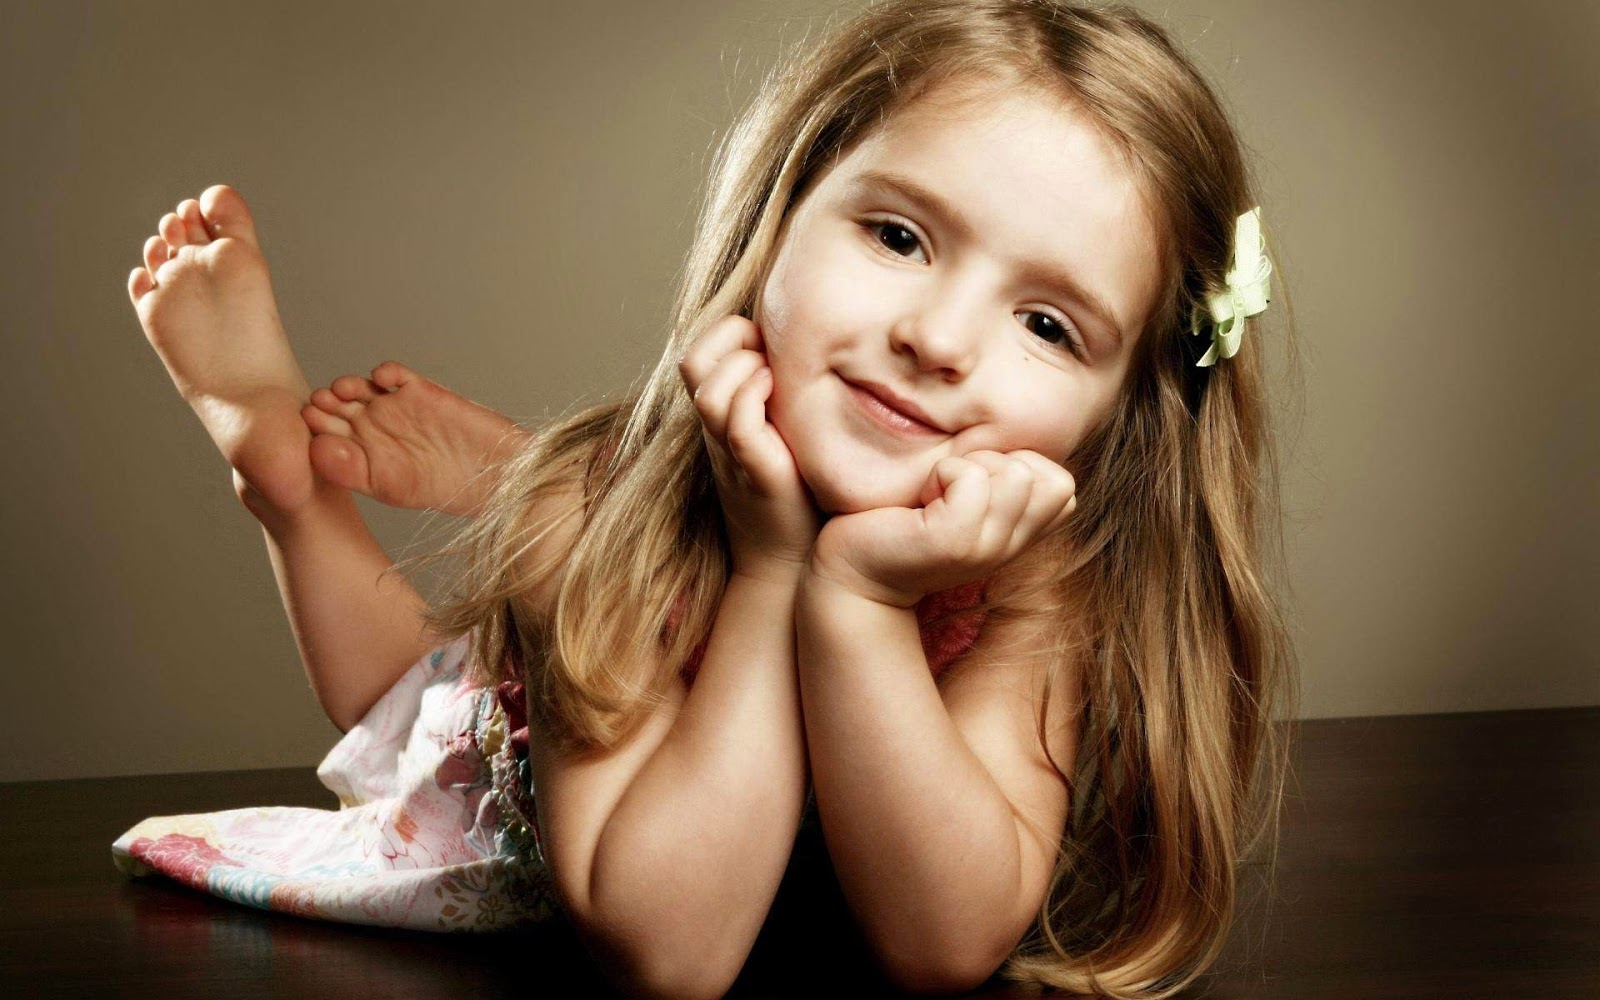 10 cute girl hd wallpapers | explore wallpaper